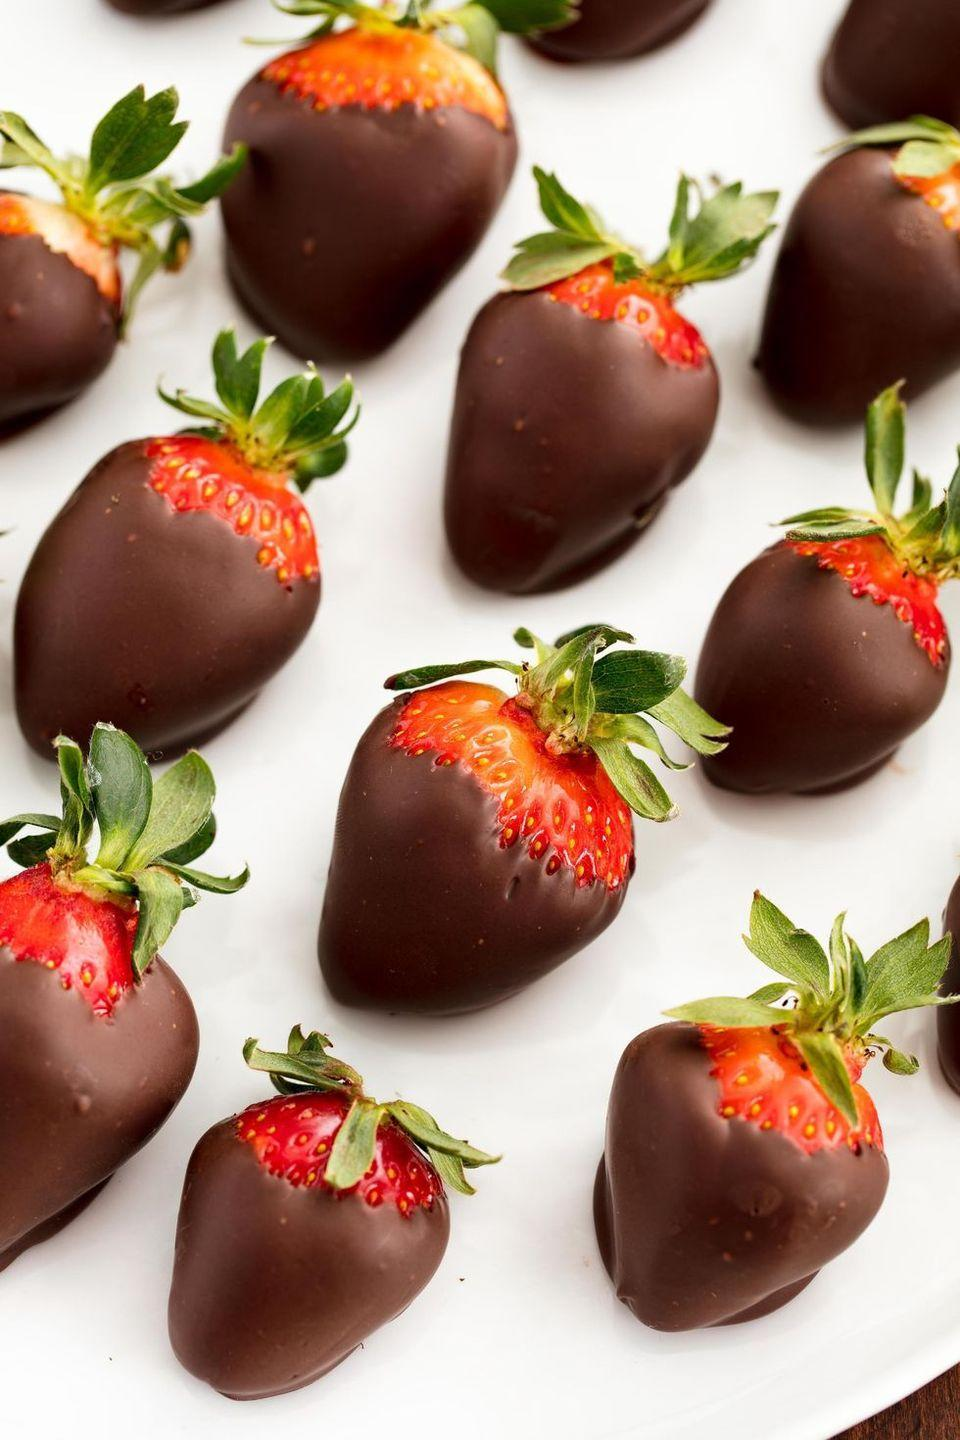 """<p>Is there anything better than <a href=""""https://www.delish.com/uk/cooking/recipes/a33257445/chocolate-covered-strawberry-cubes-recipe/"""" rel=""""nofollow noopener"""" target=""""_blank"""" data-ylk=""""slk:chocolate-covered strawberries"""" class=""""link rapid-noclick-resp"""">chocolate-covered strawberries</a>? We think not. They're at once indulgent and classy, romantic and a little cheesy.</p><p>Get the <a href=""""https://www.delish.com/uk/cooking/recipes/a33631827/how-to-make-chocolate-covered-strawberries/"""" rel=""""nofollow noopener"""" target=""""_blank"""" data-ylk=""""slk:Chocolate Covered Strawberries"""" class=""""link rapid-noclick-resp"""">Chocolate Covered Strawberries</a> recipe.</p>"""